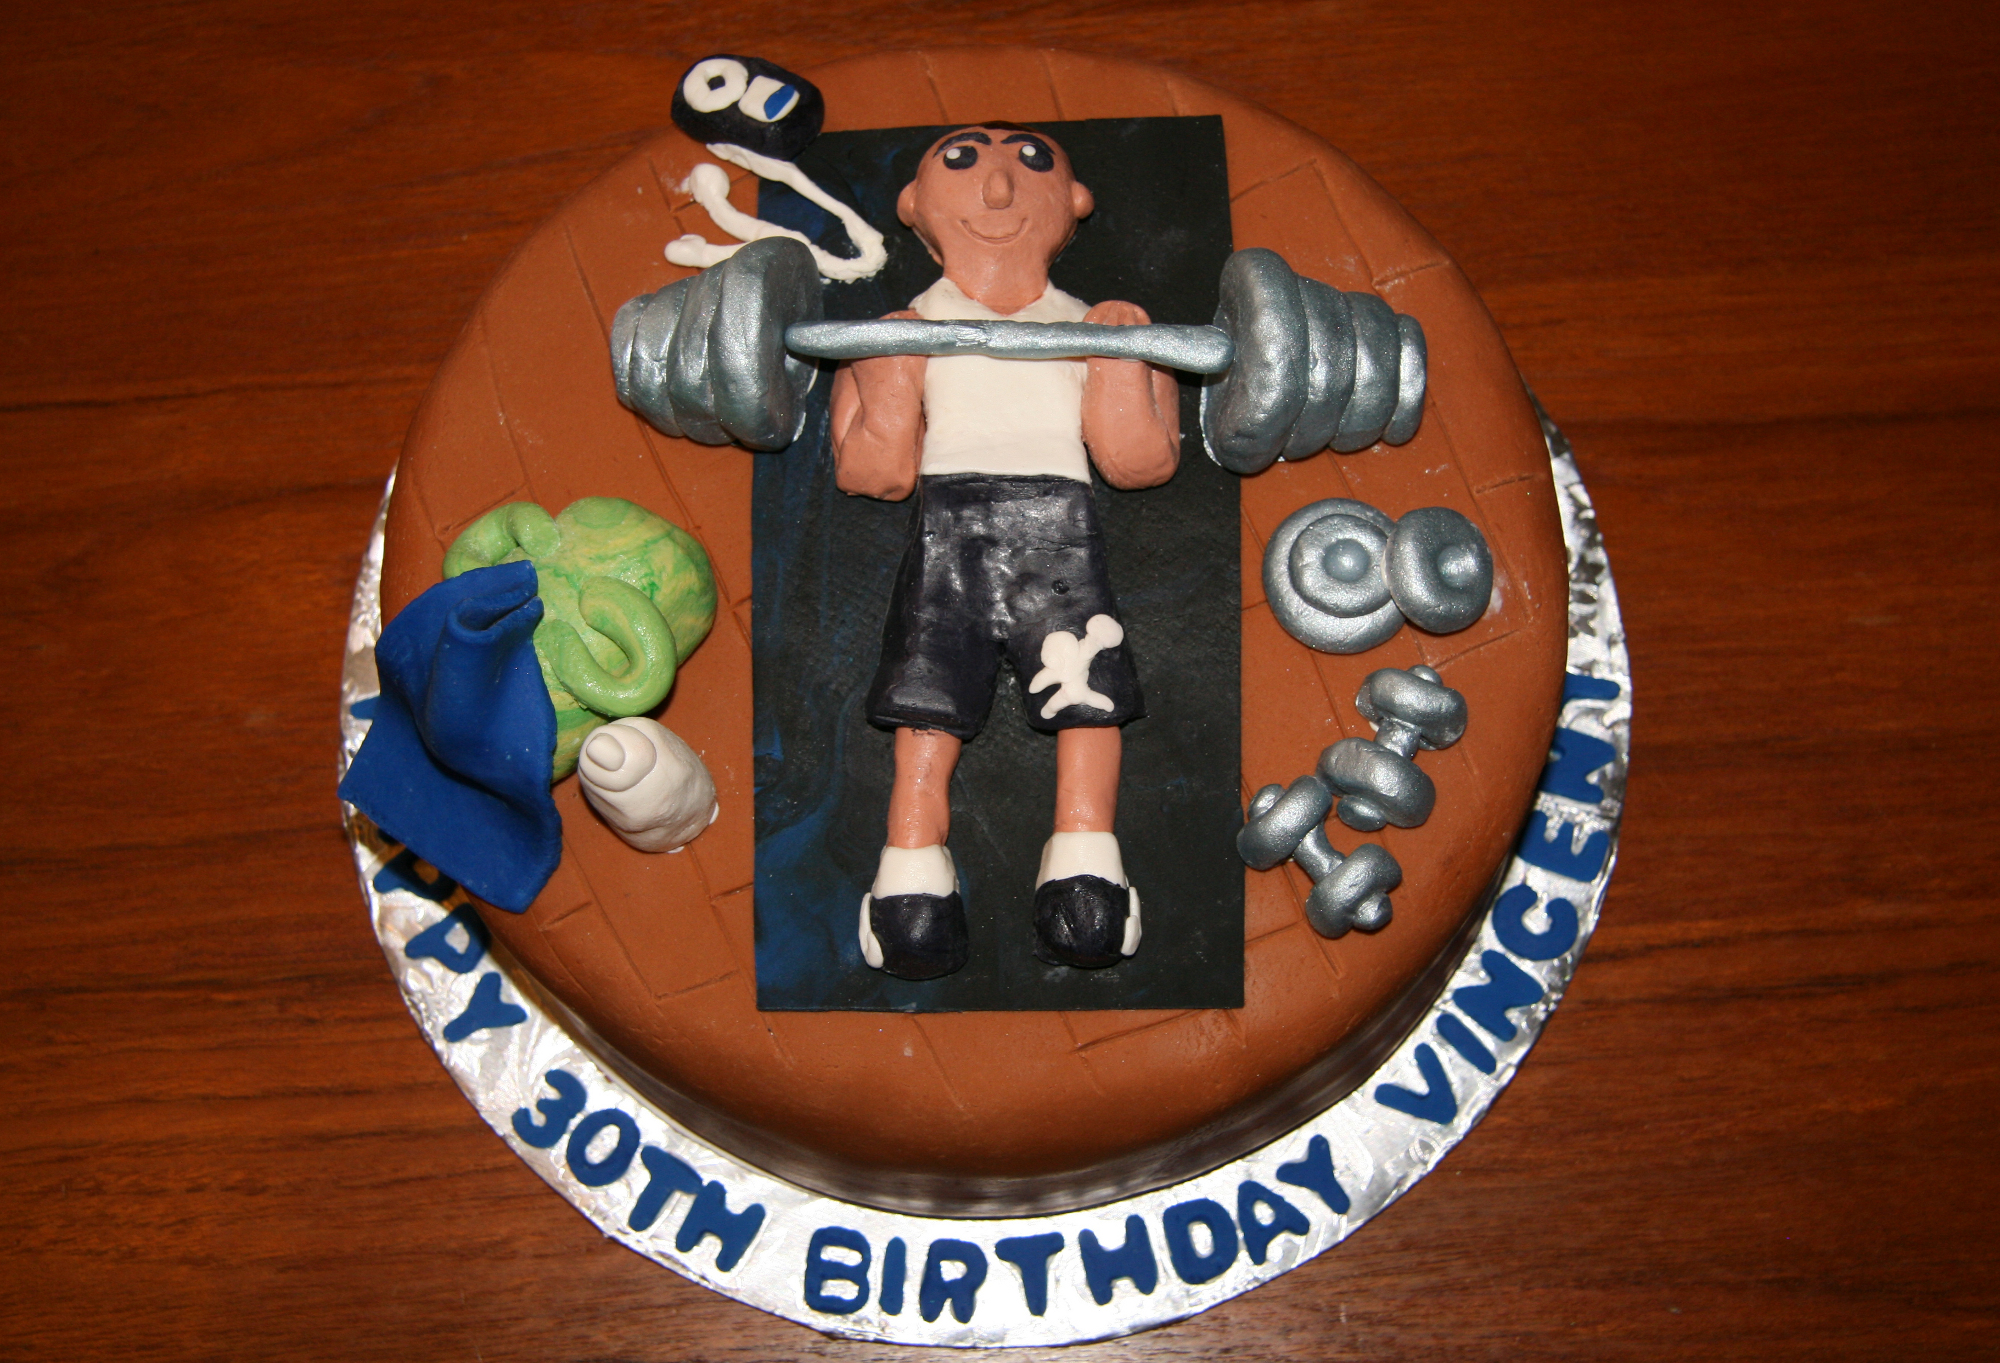 A Few Weeks Ago Friend Of The Family Hired Me To Make 30th Birthday Cake For Her Boyfriend He Likes Work Out So She Wanted Gym Themed